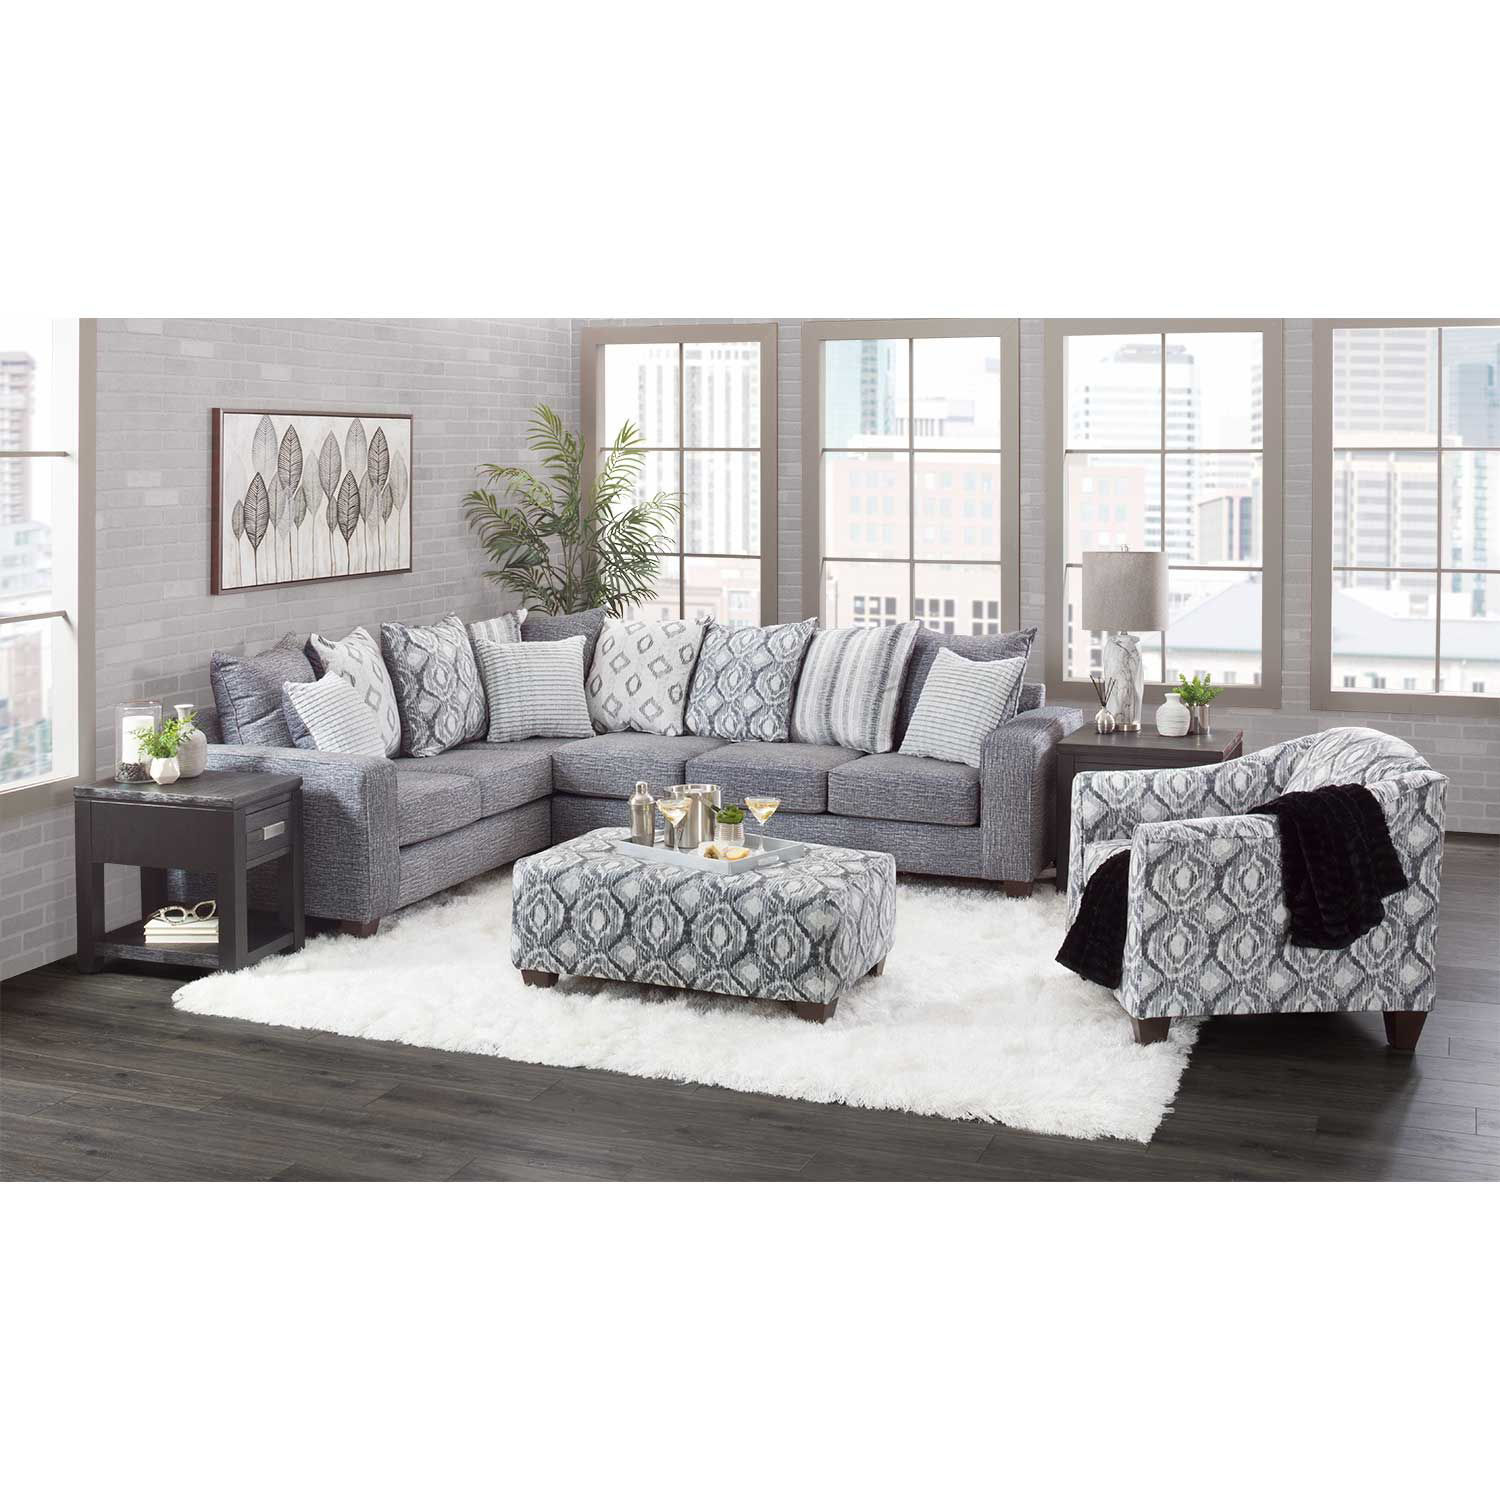 Picture of Melanie Stonewash 2 Piece Sectional